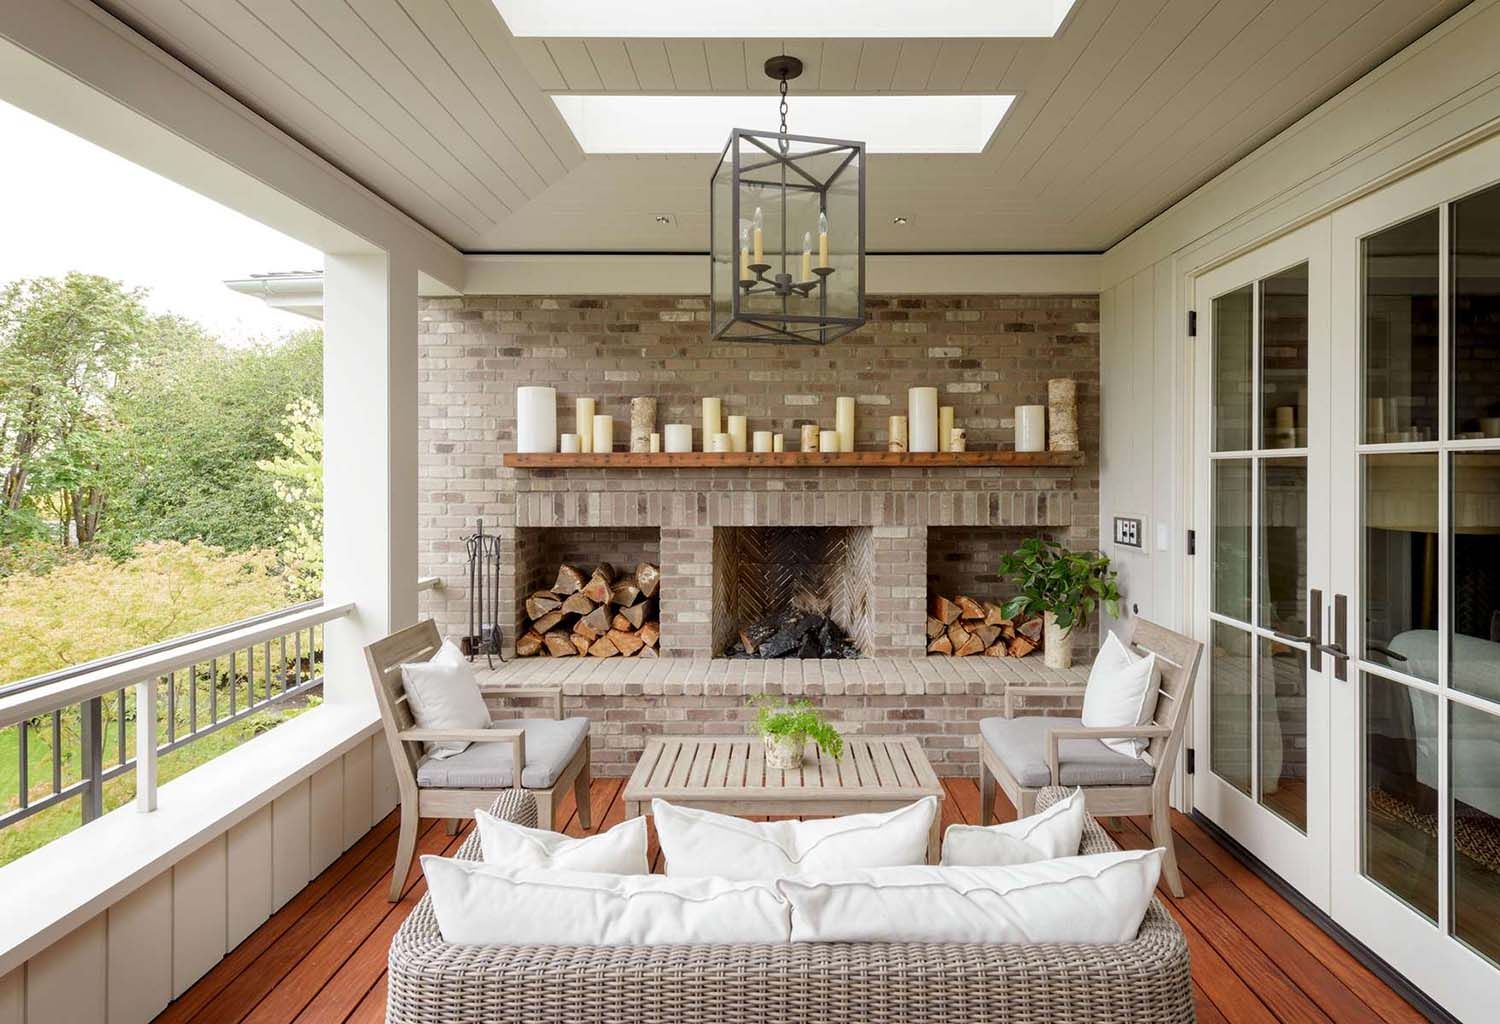 Modern farmhouse inspired residence on a woodsy Seattle property #outdoorbalcony